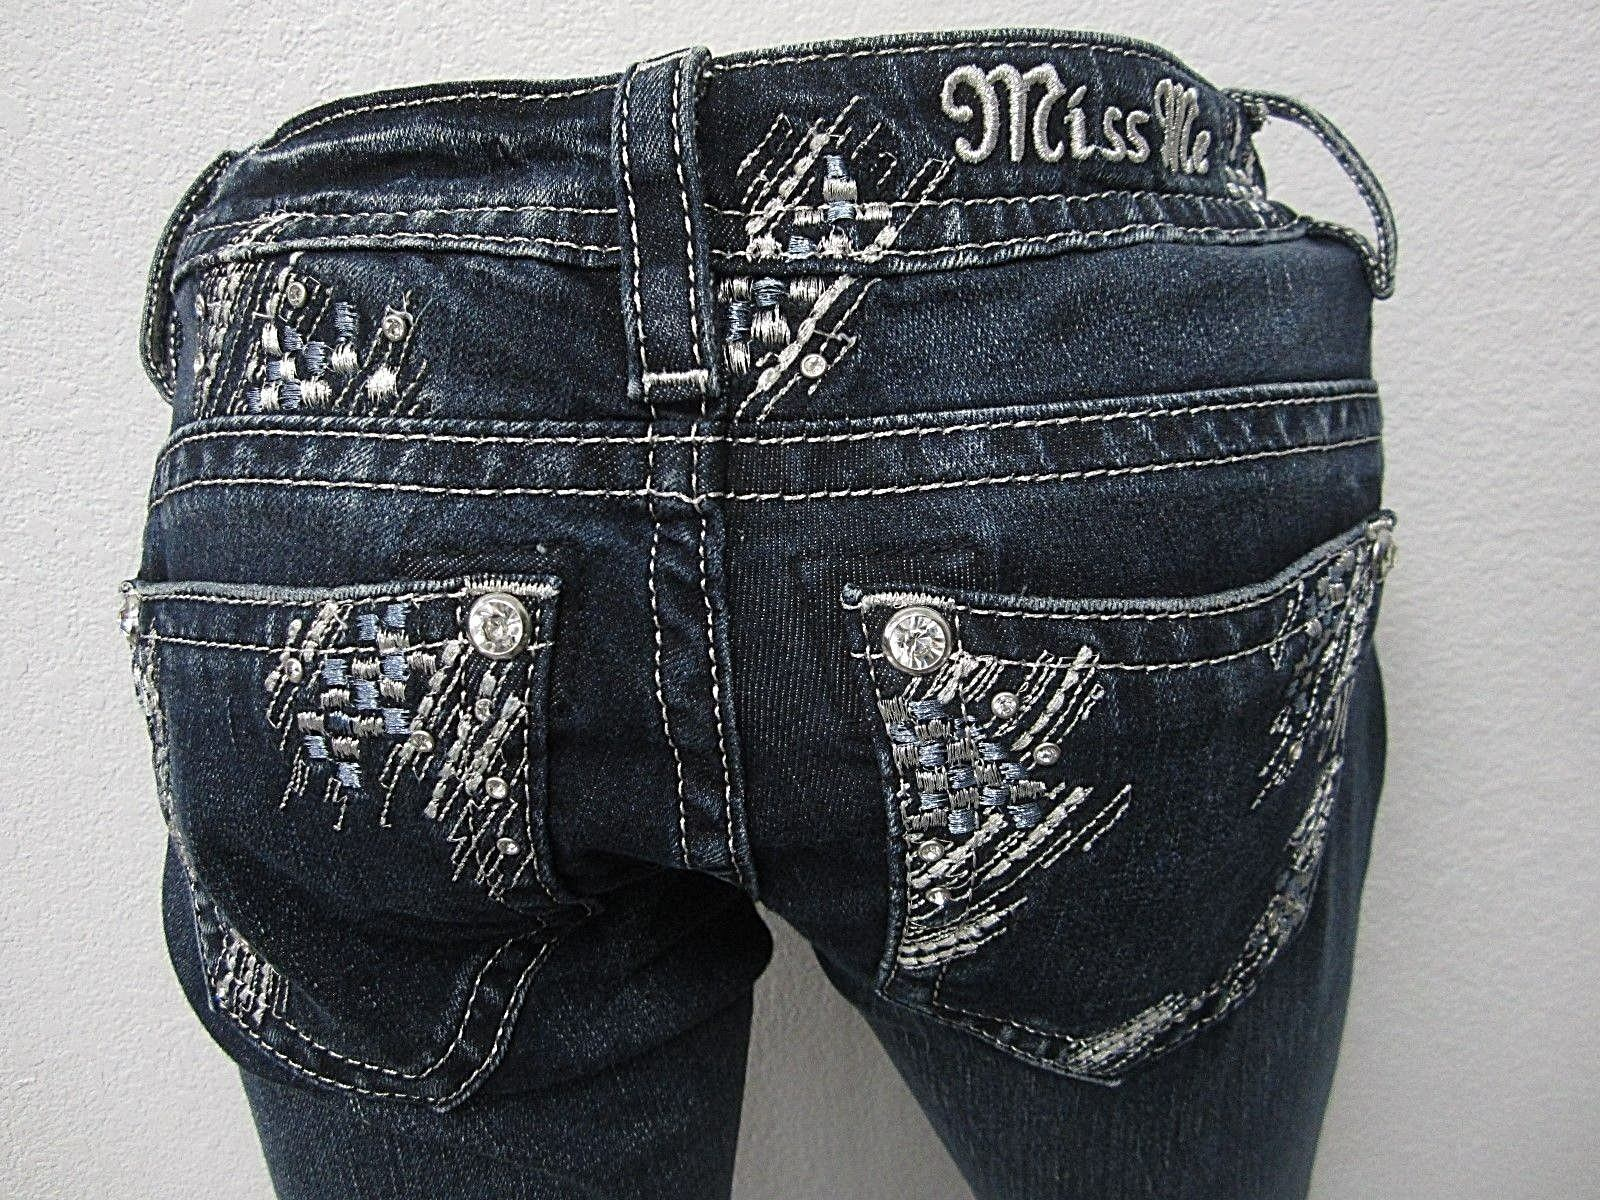 NWT Miss Me Relaxed Boot Jeans, XP7633BV - Dark bluee LOTS OF BLING Size 24 x 32